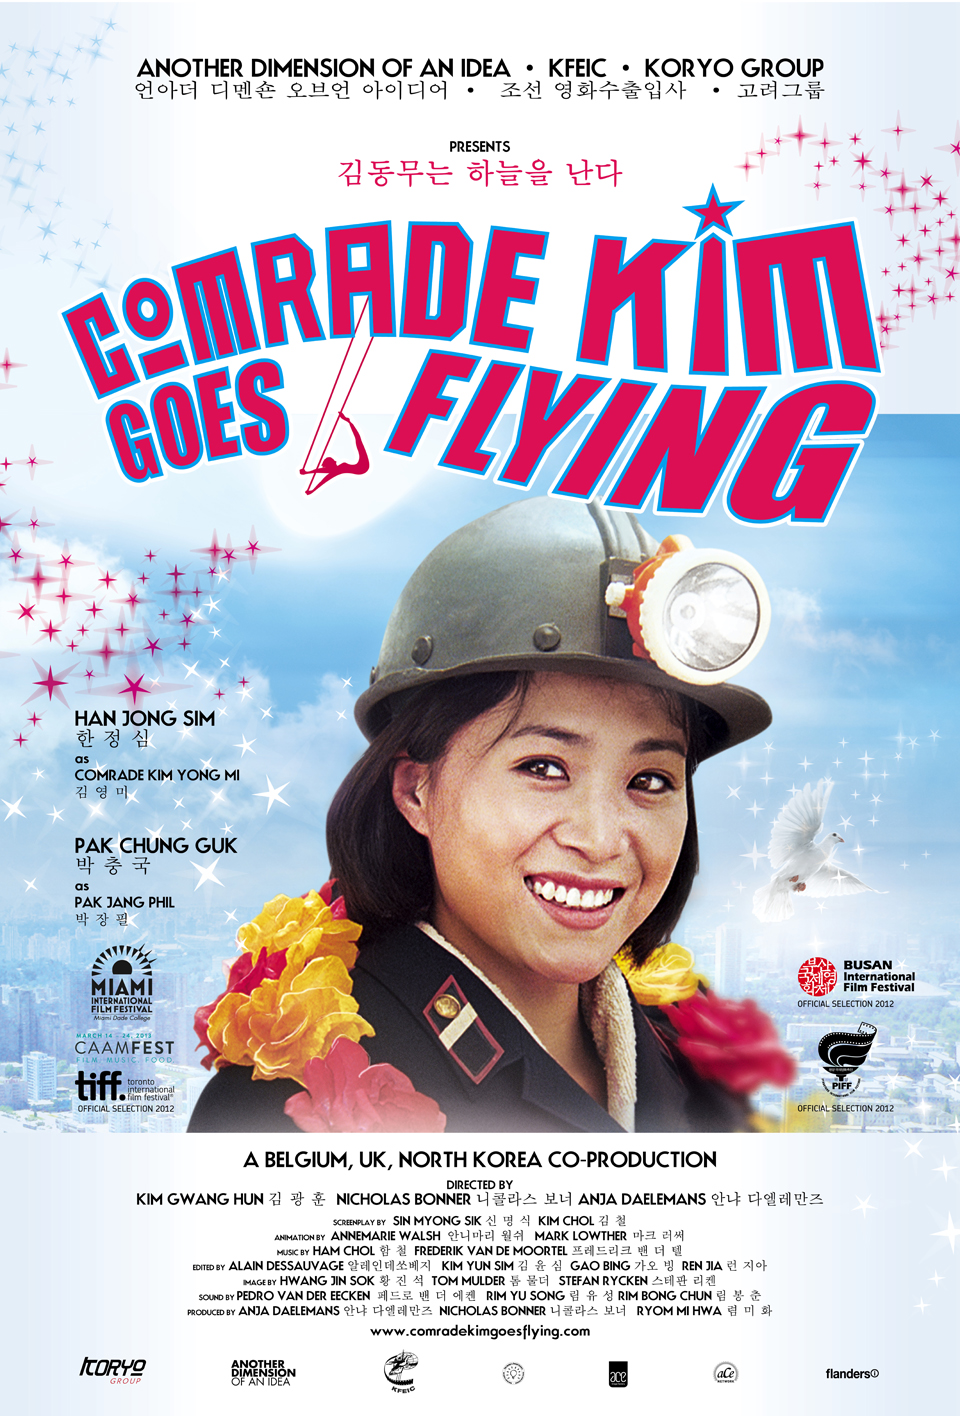 NYAFF '13: 'Comrade Kim Goes Flying' Movie Review – My First Take on a North Korean Film